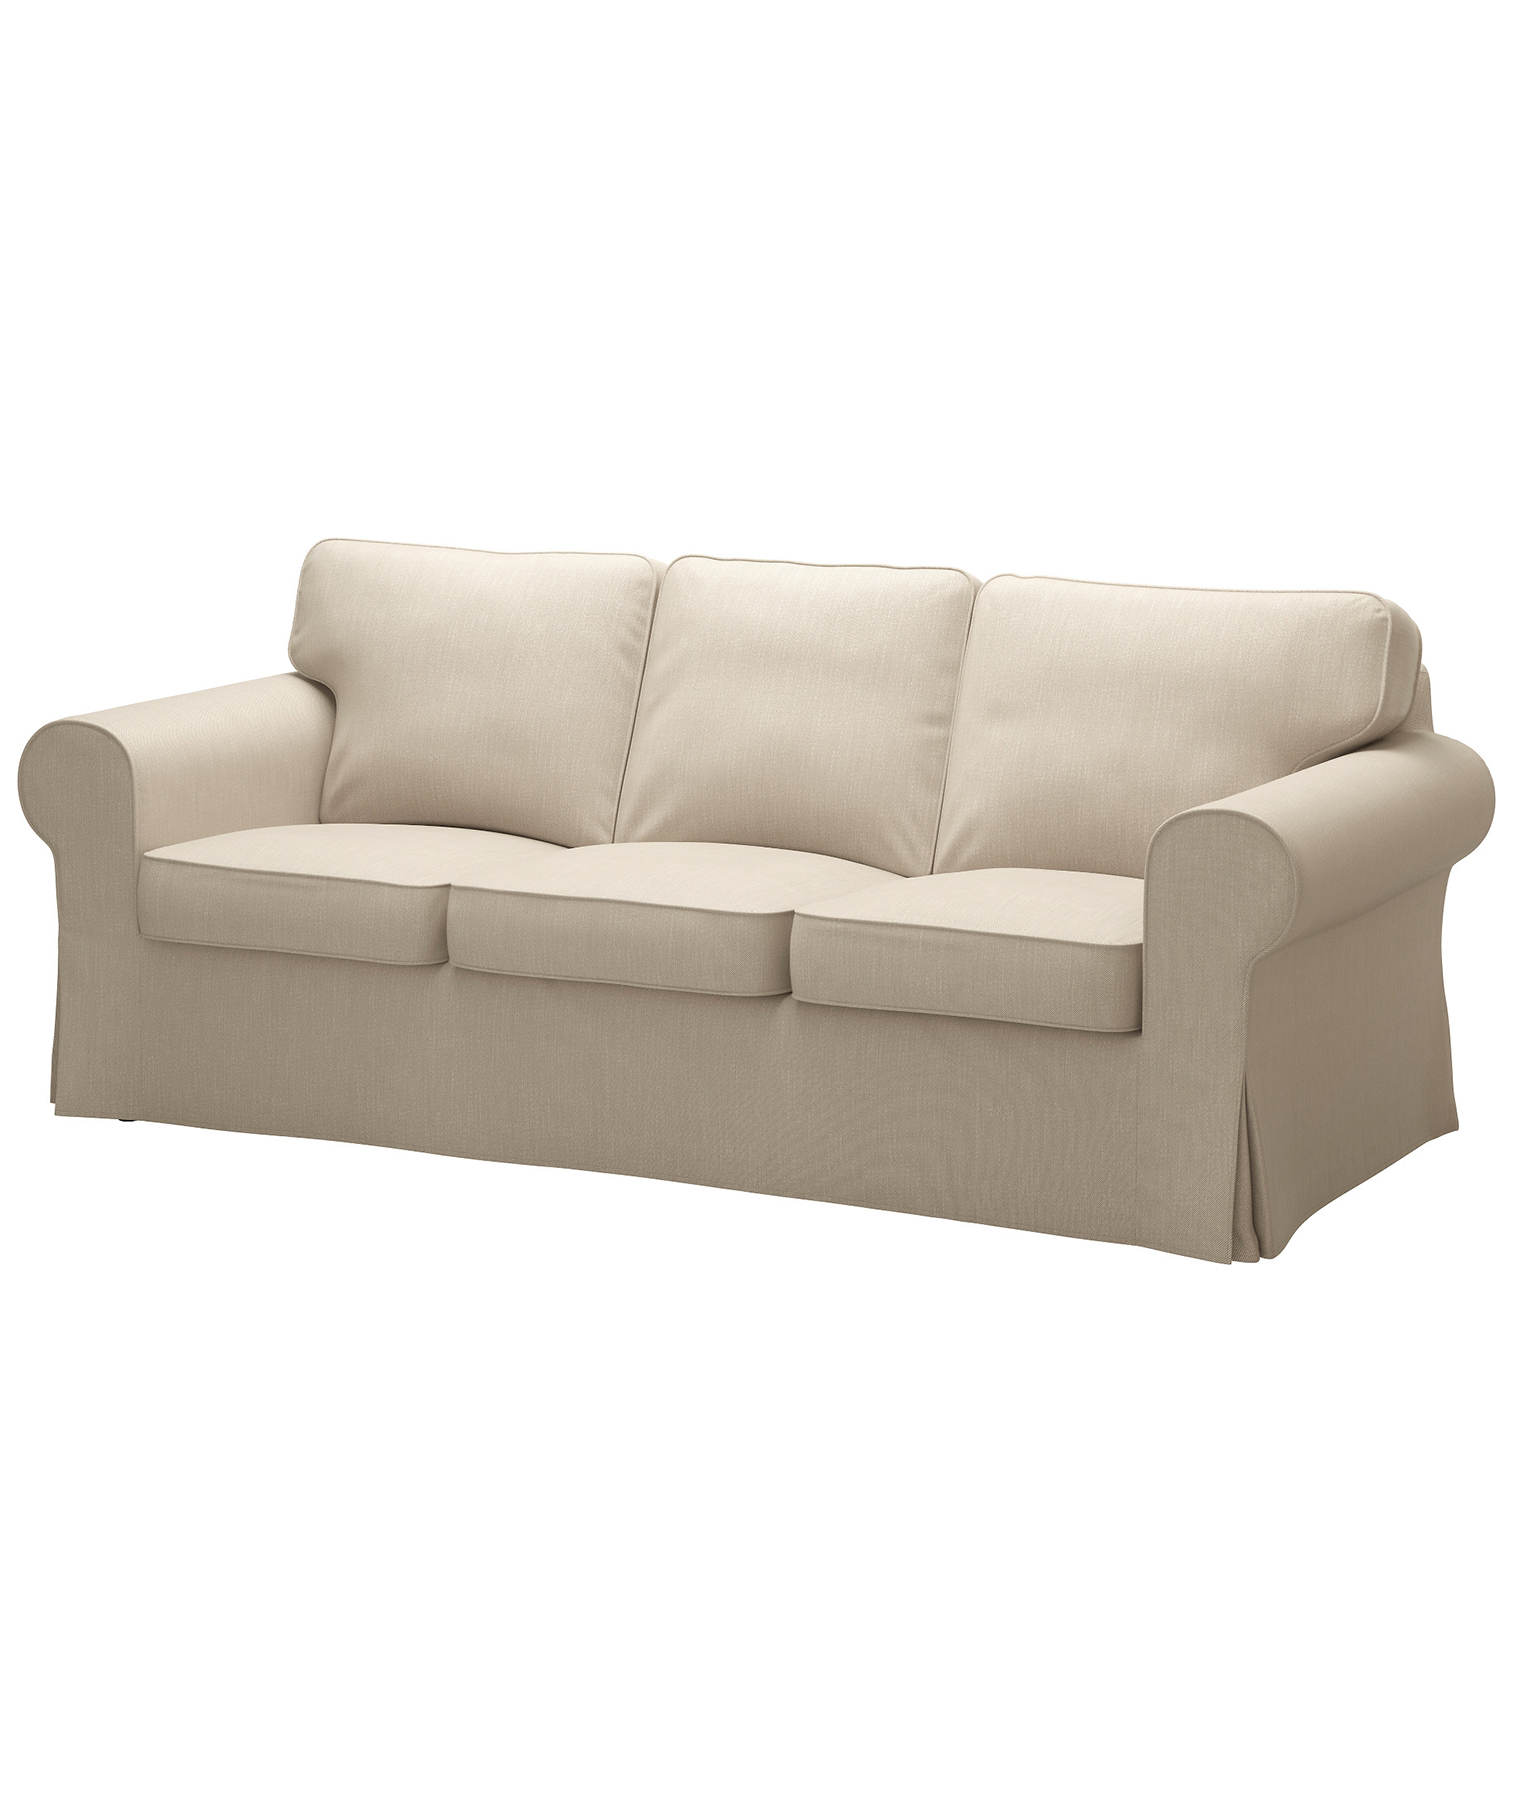 Swell You Can Get 100 Off This Popular Ikea Sofa For One Day Only Uwap Interior Chair Design Uwaporg